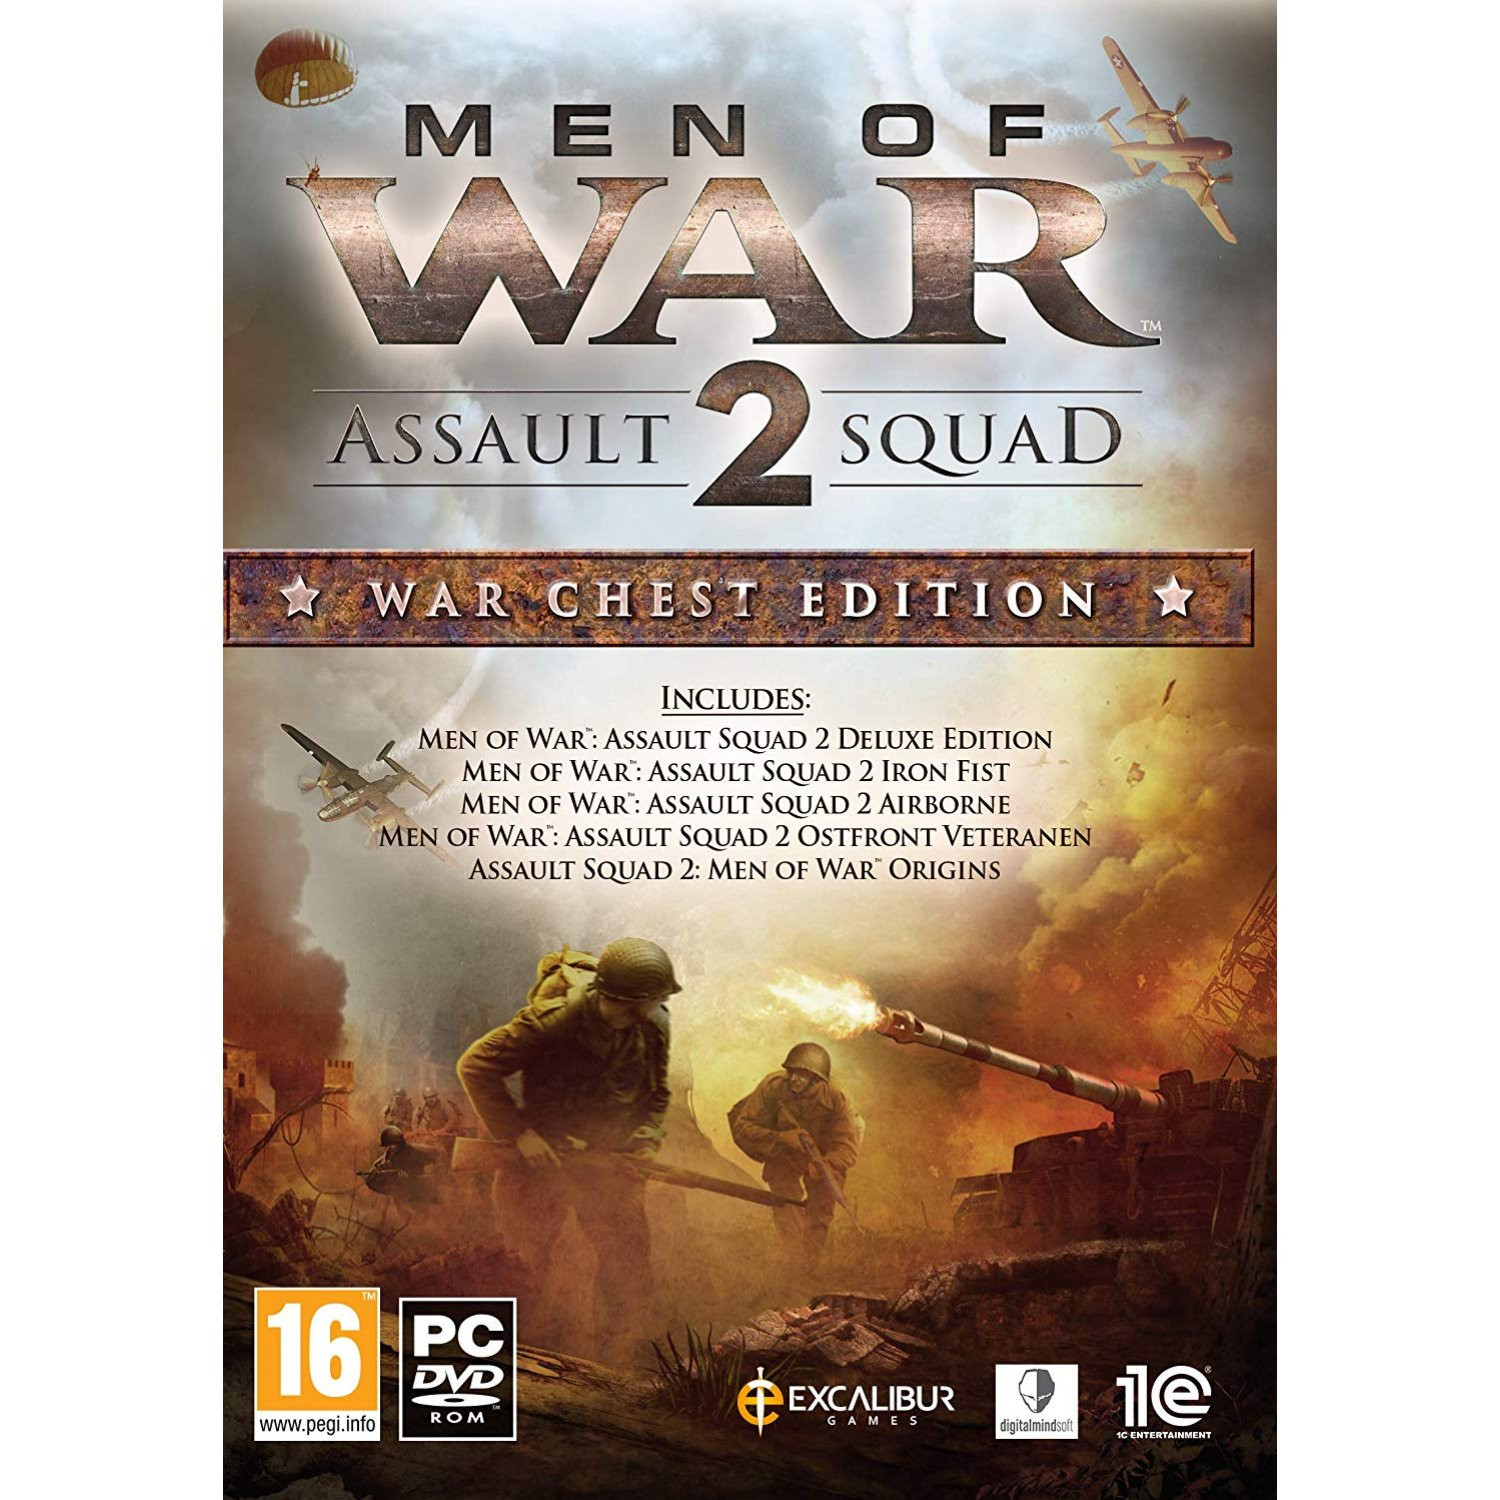 PCG Men of War Assault Squad 2: War Chest Edition